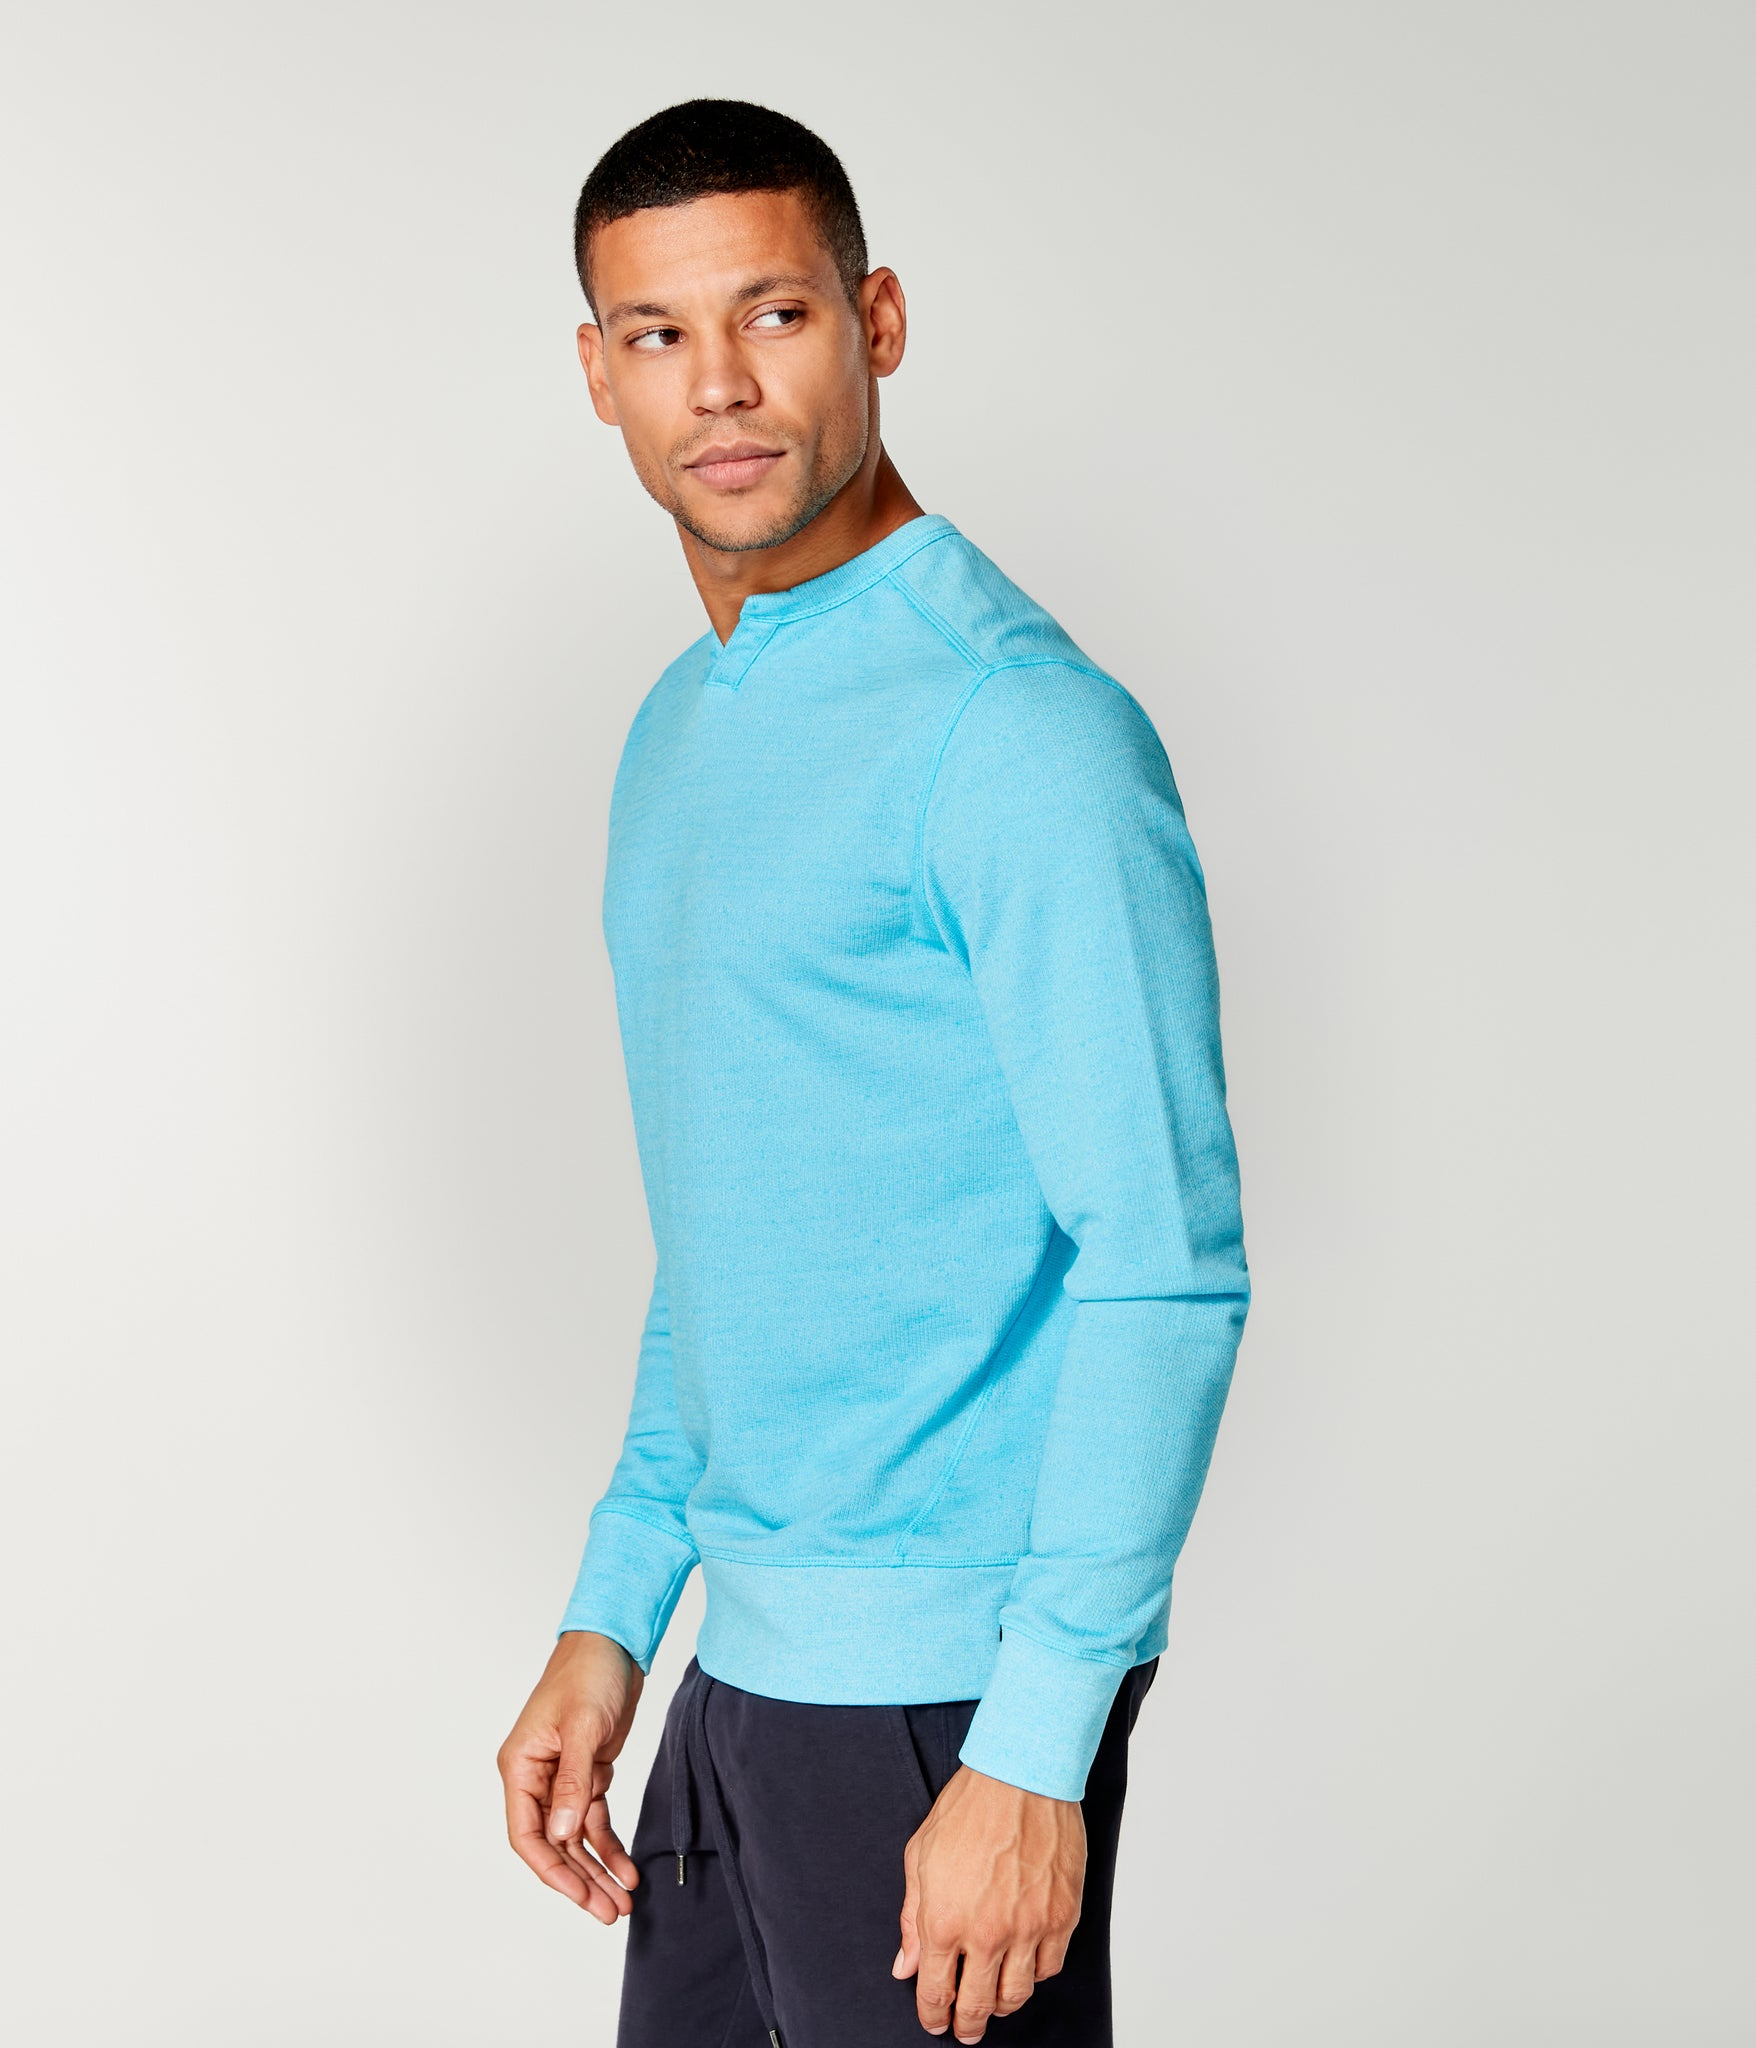 Victory V-Notch Sweatshirt - Turq